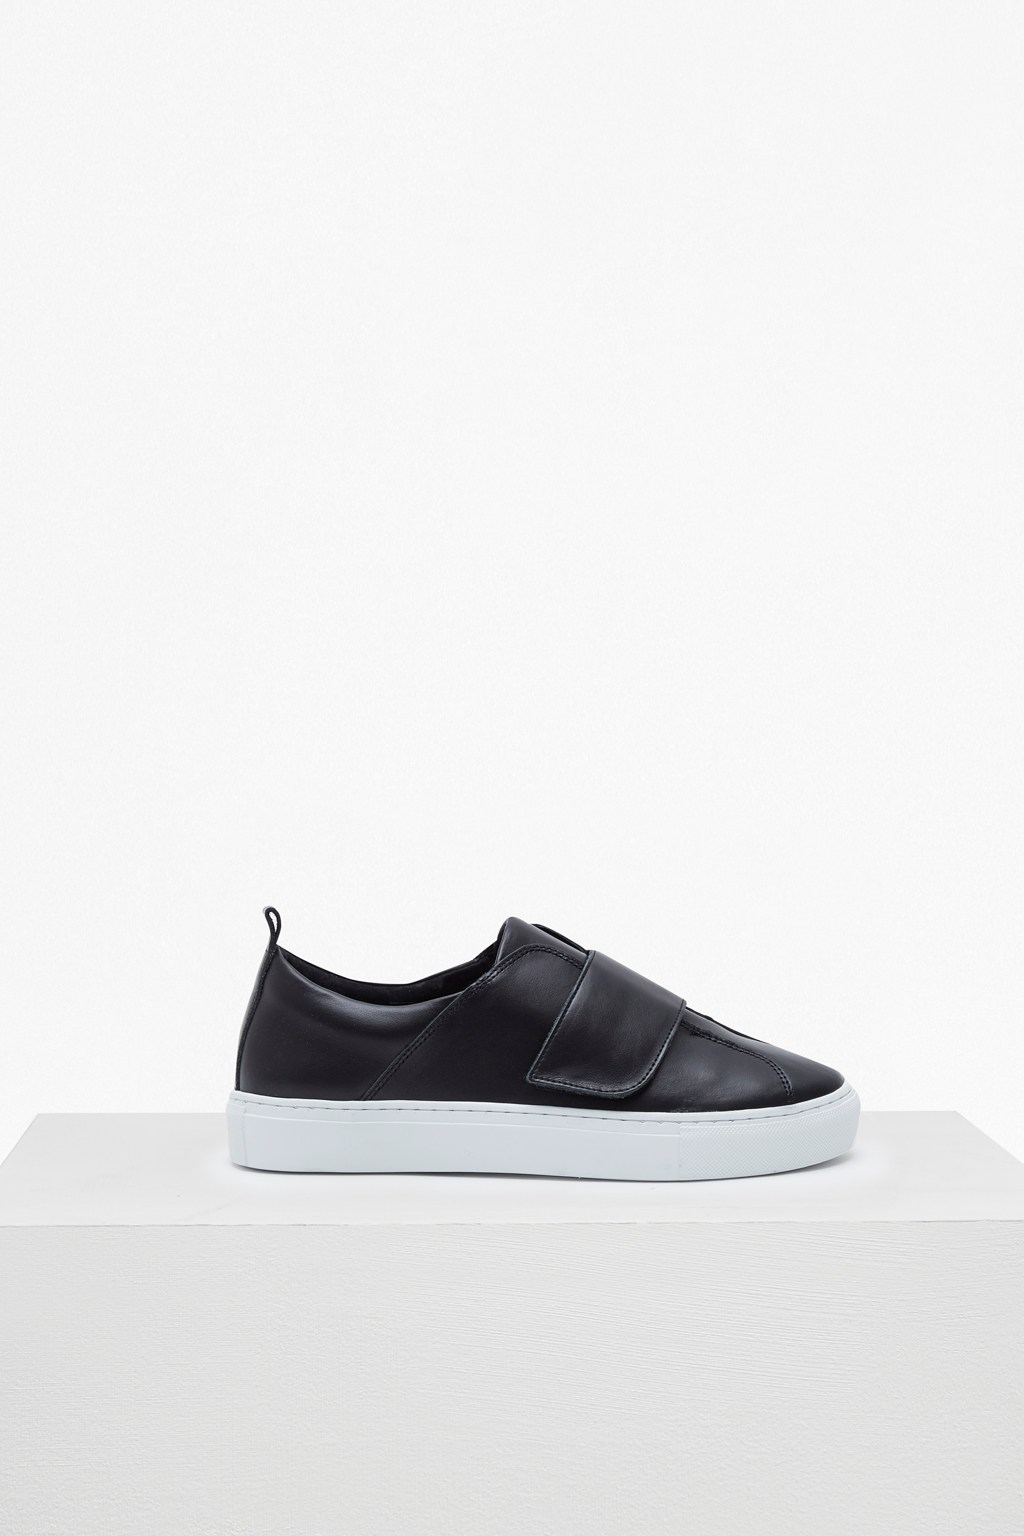 cheapest price best best sneakers Nolita Velcro Slip On Trainers | Sale | French Connection Usa